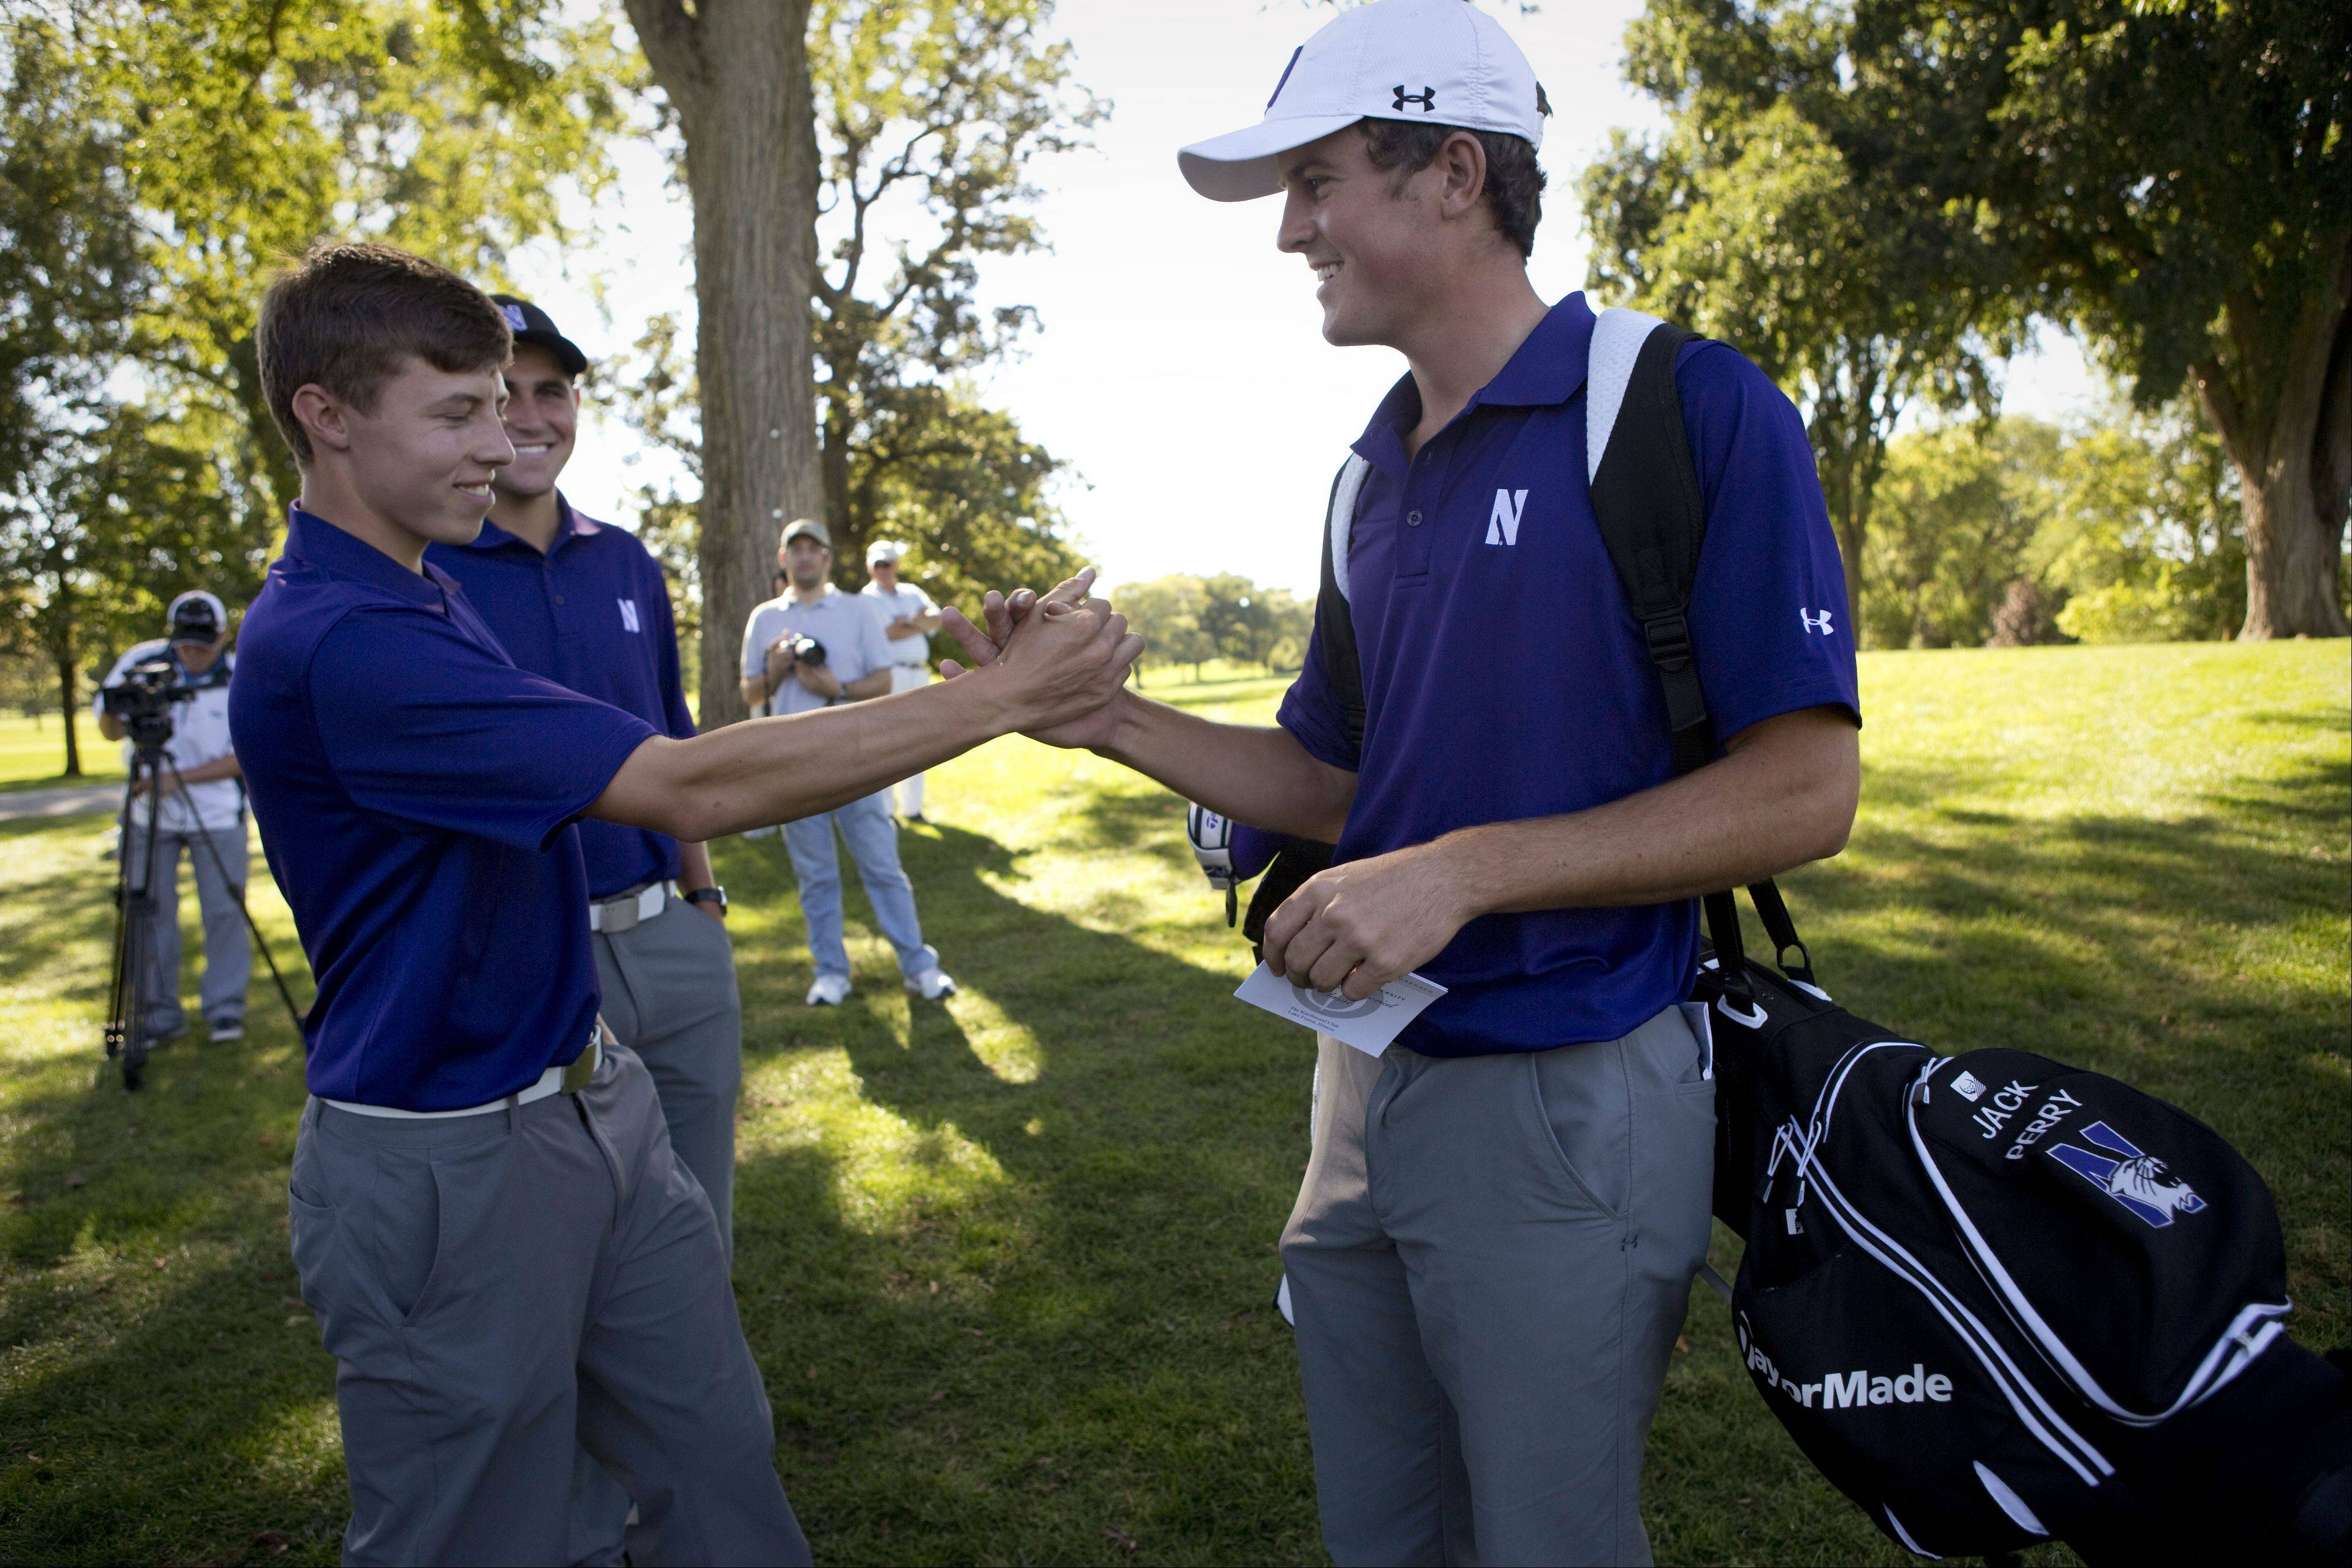 Northwestern freshman Matt Fitzpatrick (left), the 2013 U.S. Amateur champion, and senior Jack Perry (right), a 2012-13 All-American, led Northwestern at the Windon Memorial Classic with a third-place and second-place finish, respectively, at Knollwood Golf Club in Lake Forest.